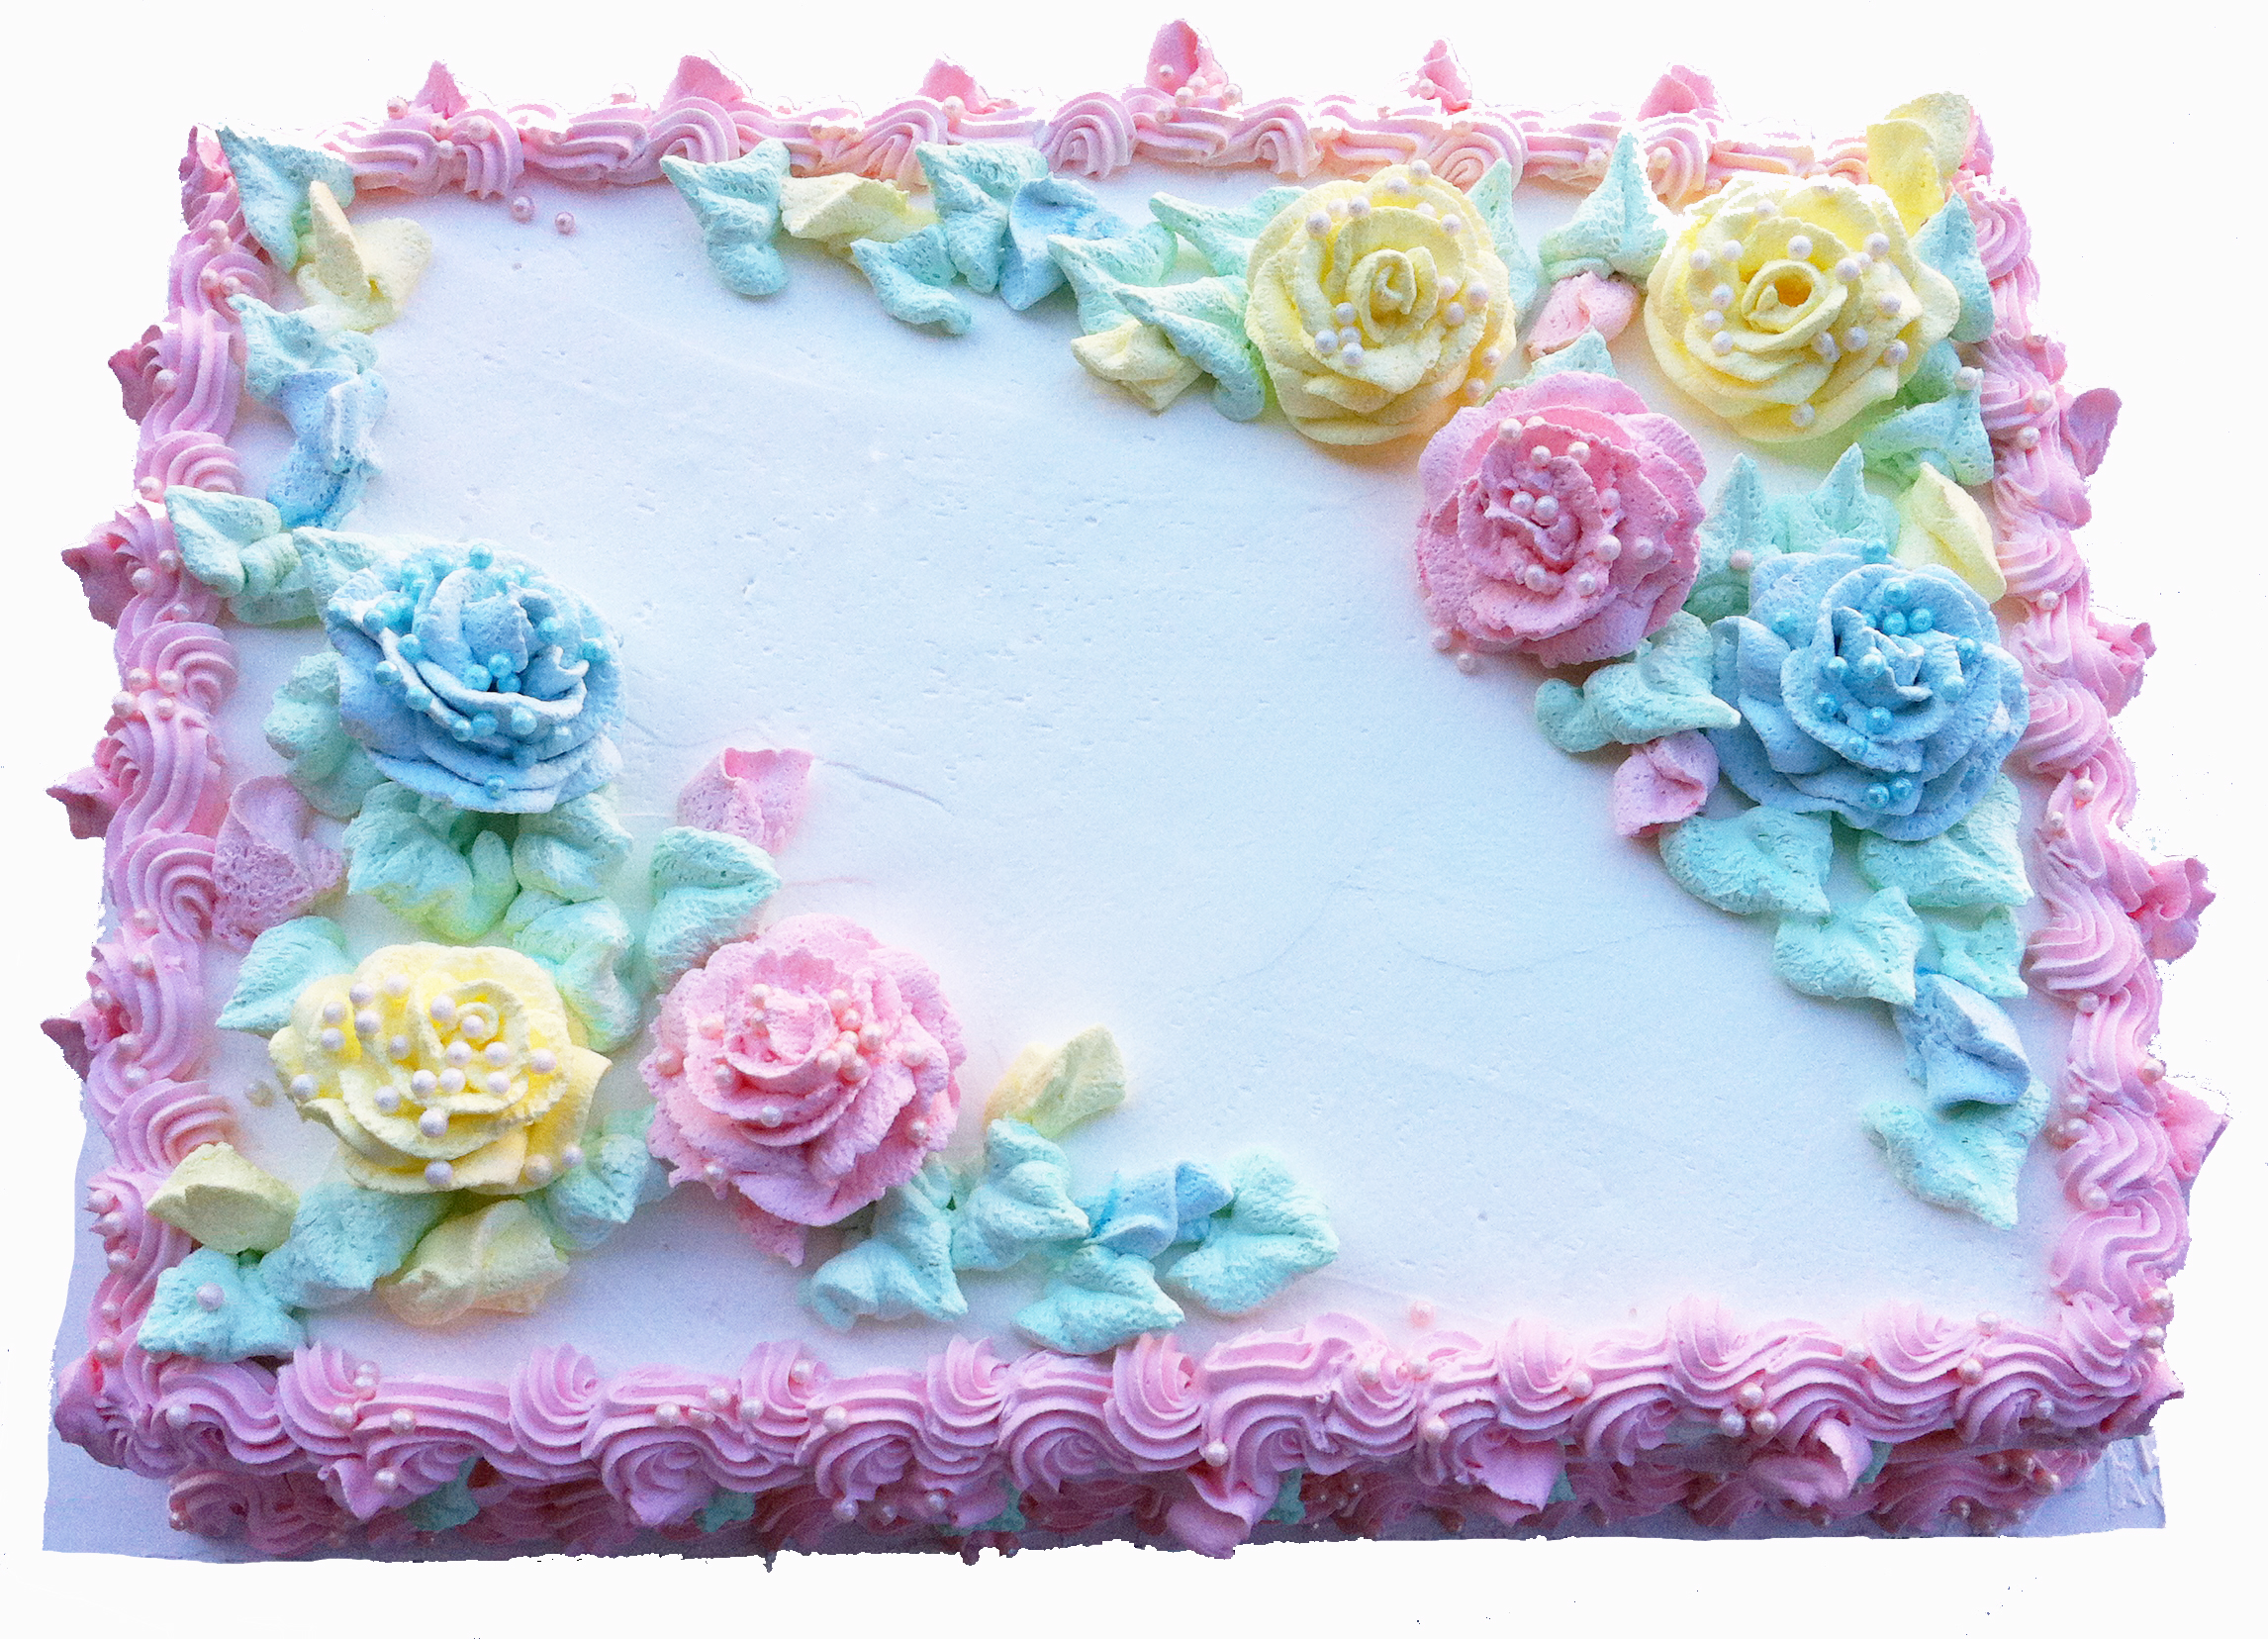 12 Photos of Sheet Cakes With Pastel Roses